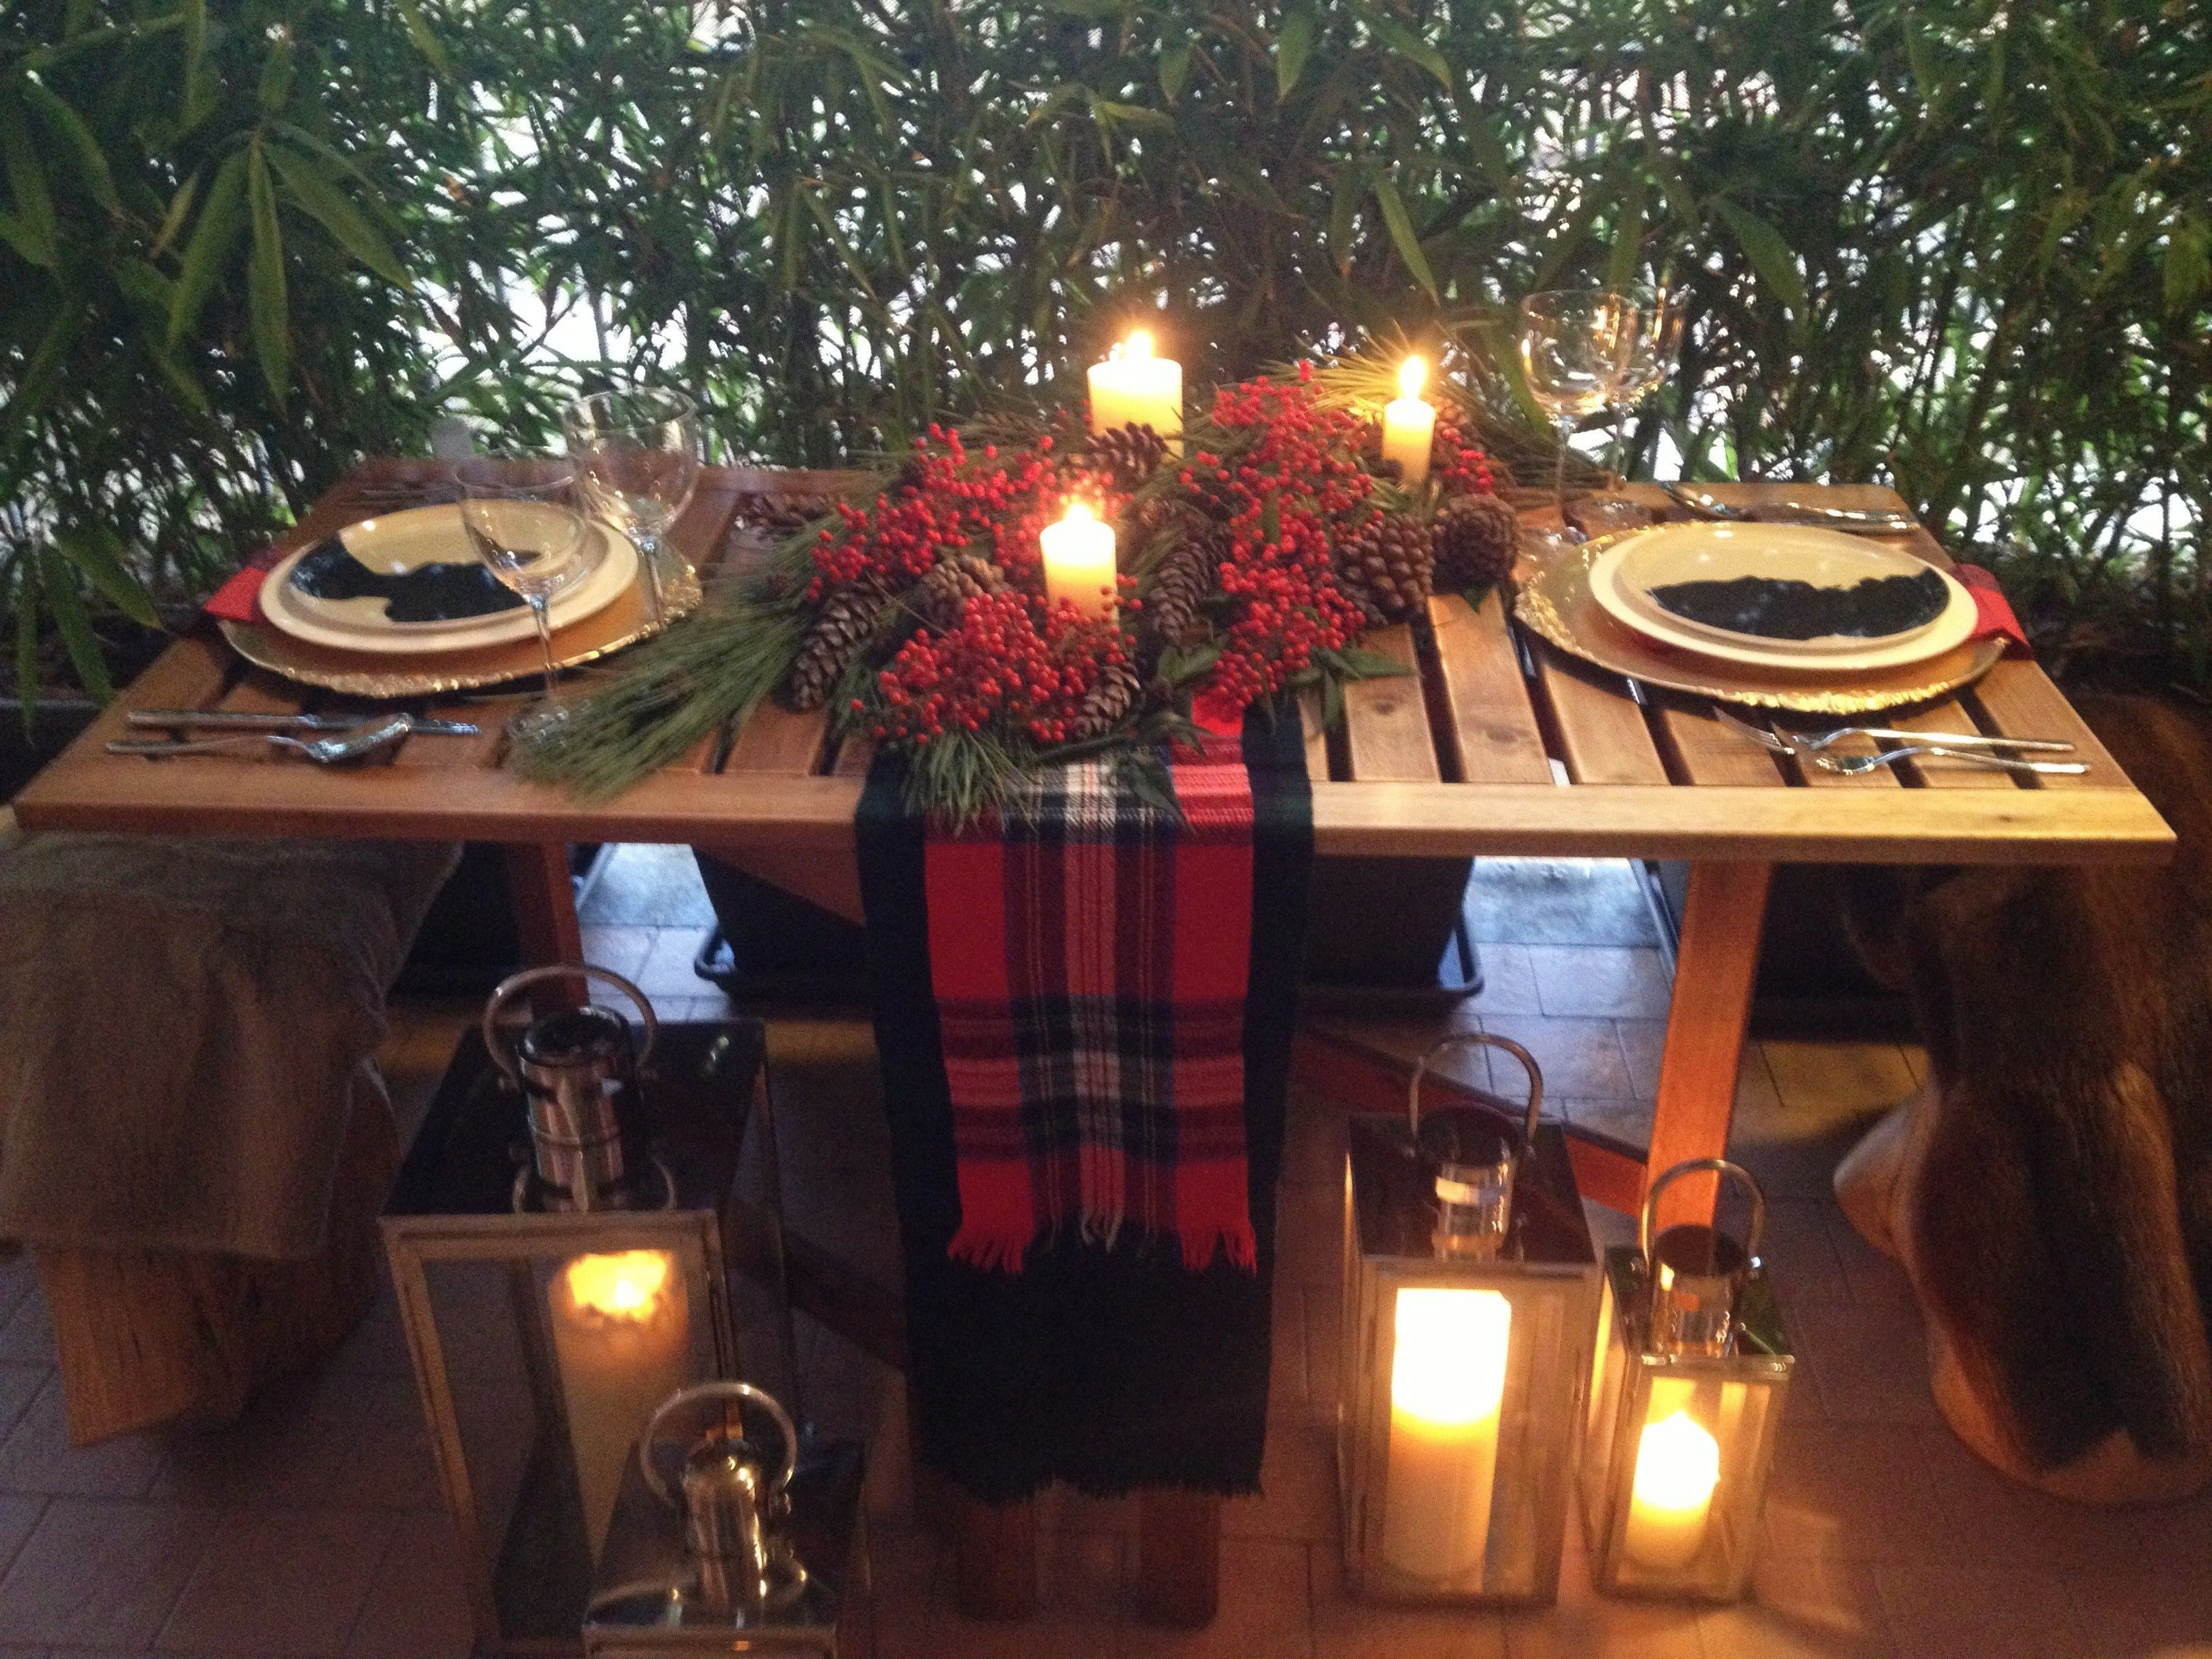 Romantic Christmas Table Setting For Two Christmas Table Settings Christmas Table Christmas Table Decorations